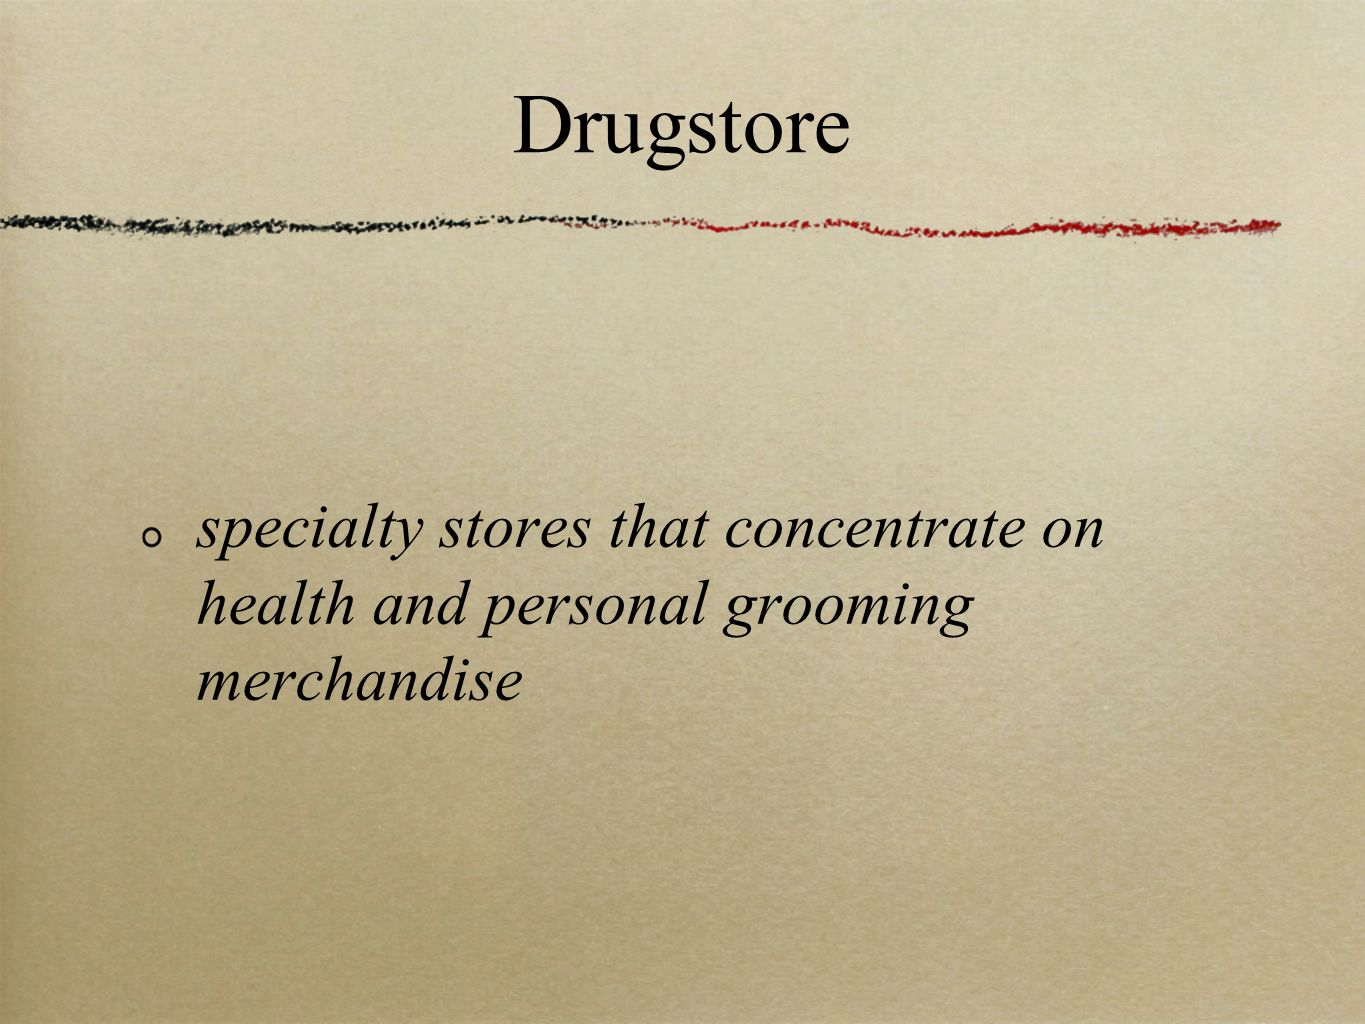 Drugstore specialty stores that concentrate on health and personal grooming merchandise